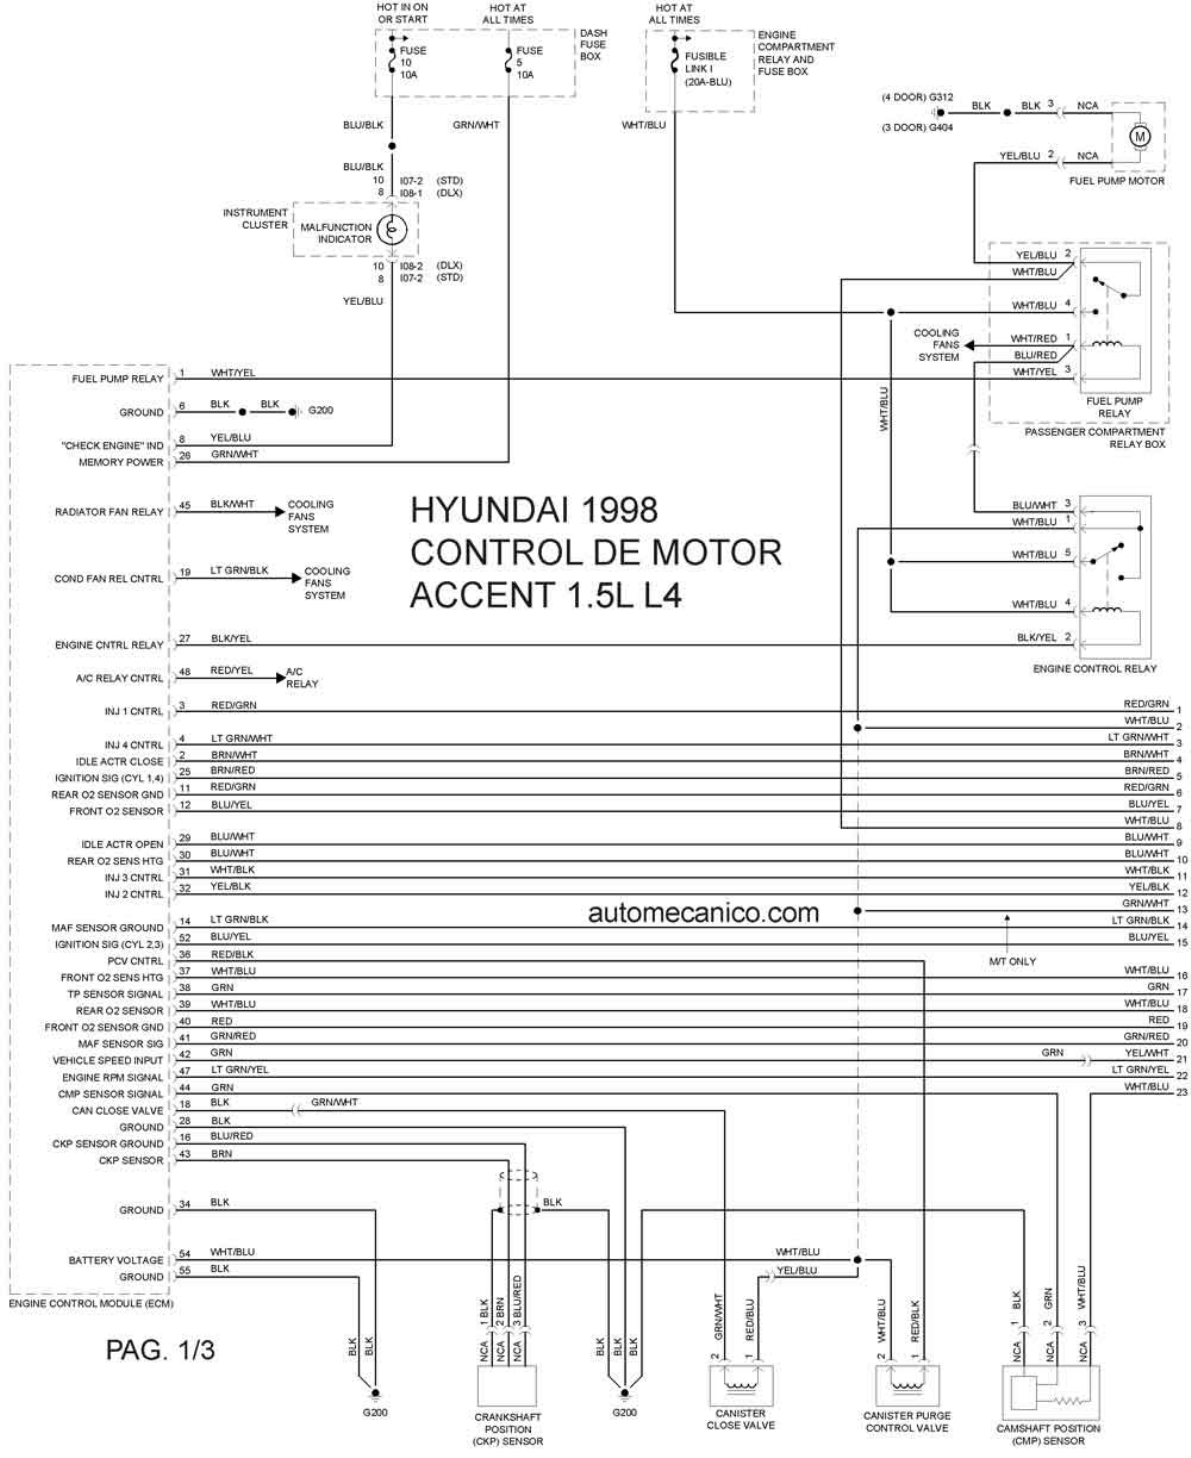 DIAGRAM] 2003 Hyundai Accent Wiring Diagrams FULL Version HD Quality Wiring  Diagrams - THEDIAGRAMGURU.BANDBANNAMARIA.IT | Hyundai Accent Spark Plug Wiring Diagram |  | Diagram Database - bandbannamaria.it